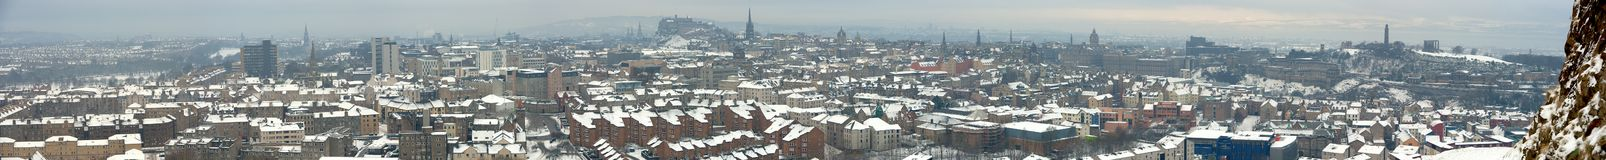 Panorama van Edinburgh, Schotland, in sneeuw Stock Foto